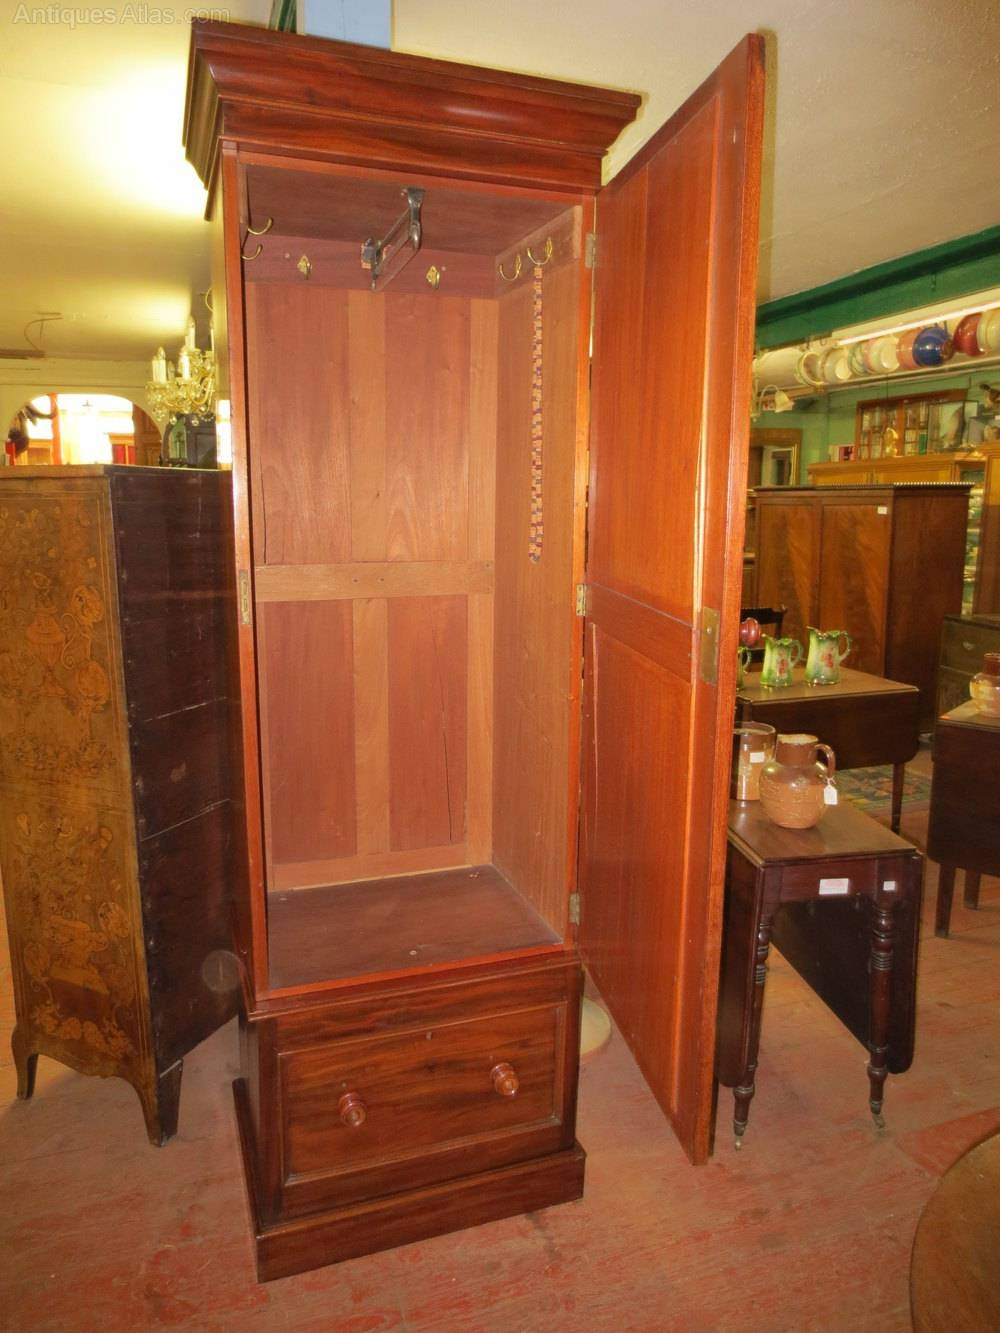 Mahogany Single Wardrobe - Antiques Atlas pertaining to Antique Single Wardrobes (Image 9 of 15)